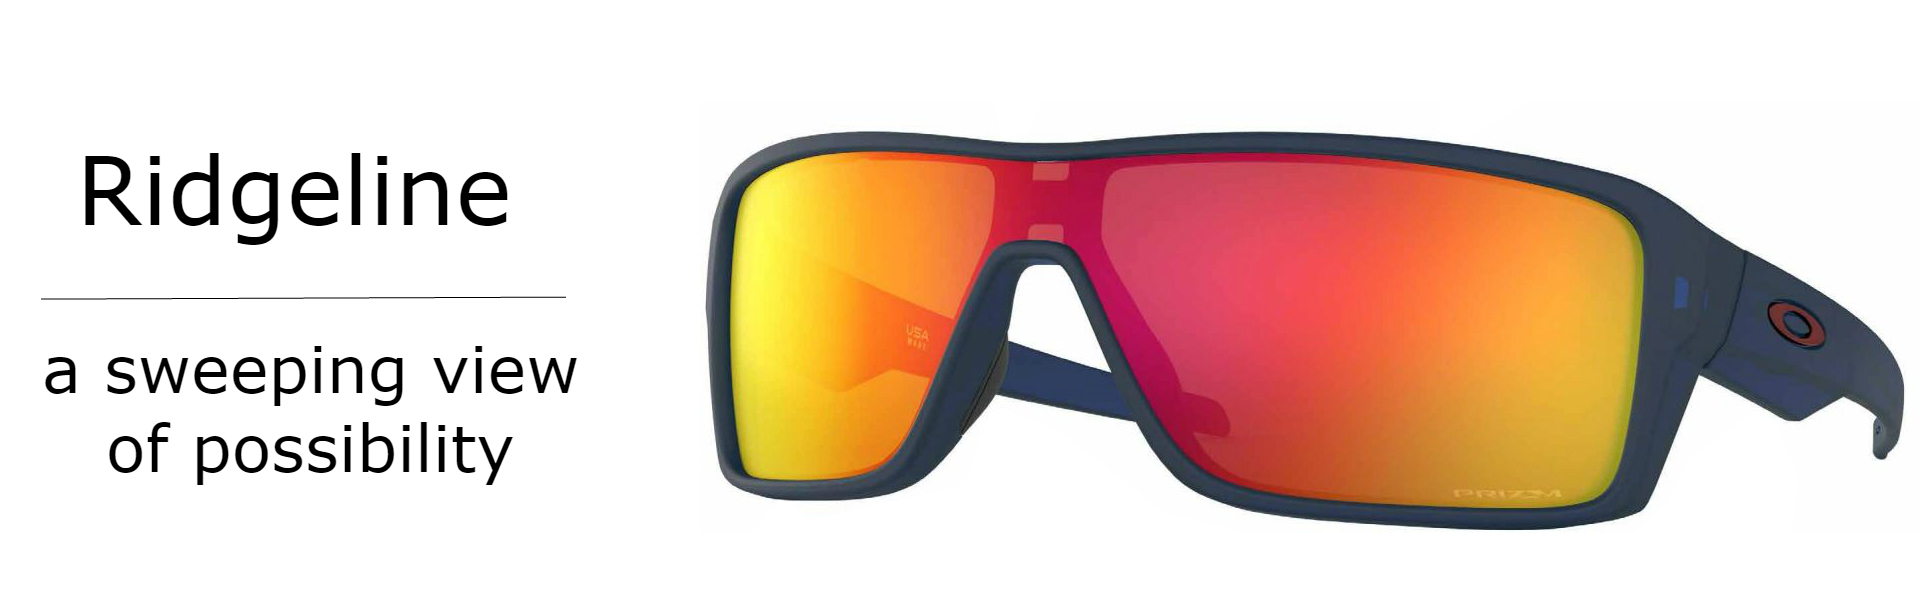 Oakley Ridgeline Sunglasses OO9419 Product Banner | EyeWearThese